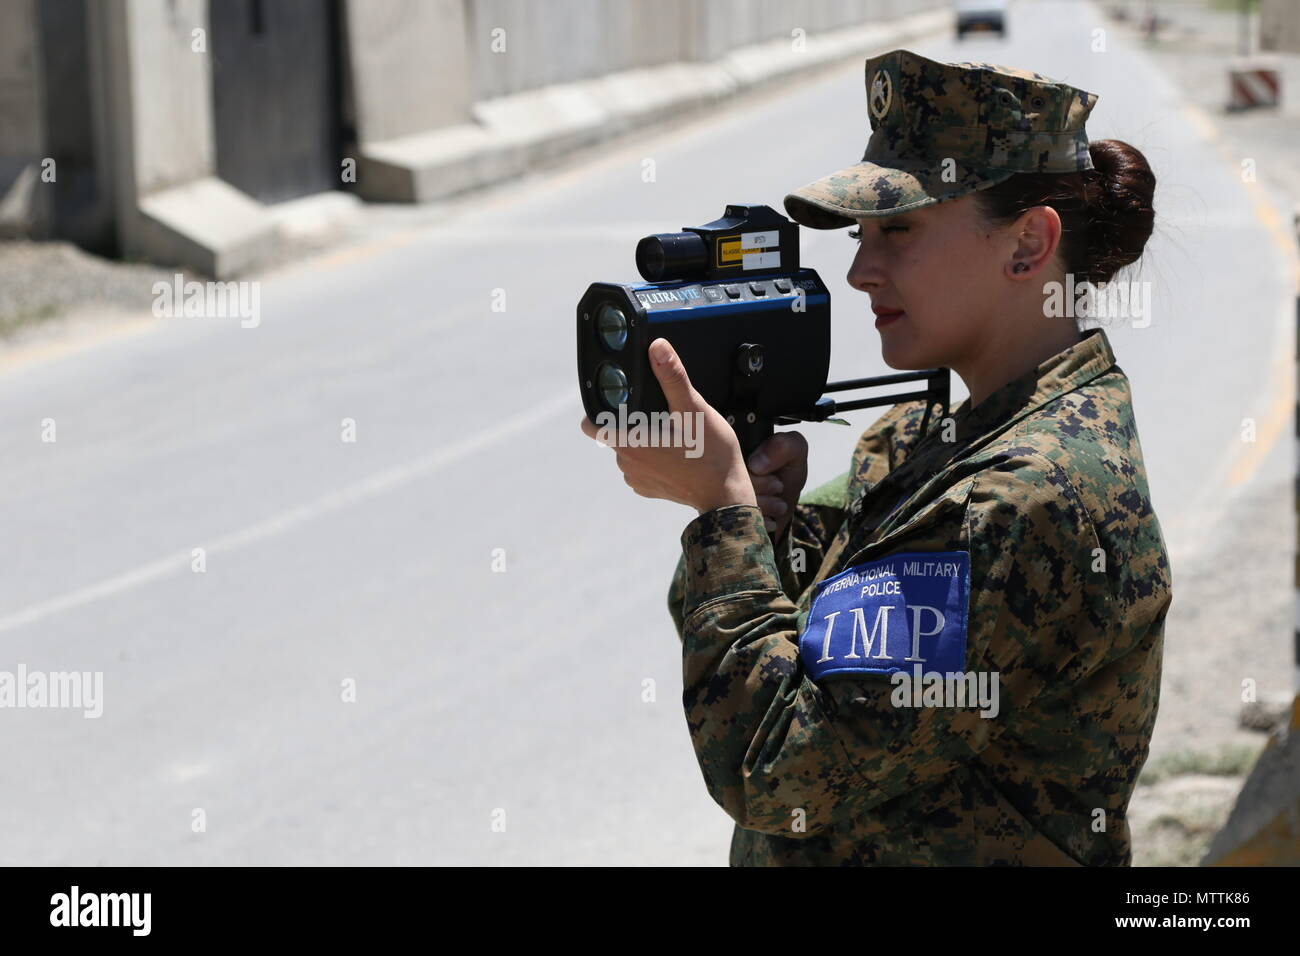 KABUL, Afghanistan (May 27, 2018) – An International Military Policewoman from the Armed Forces of Bosnia and Herzegovina conducts a routine traffic patrol at Hamid Karzai International Airport, May 27, 2018. Bosnia and Herzegovina are one of 39 nations who play an integral role in the NATO-led Resolute Support mission. (Resolute Support photo by Jordan Belser) Stock Photo